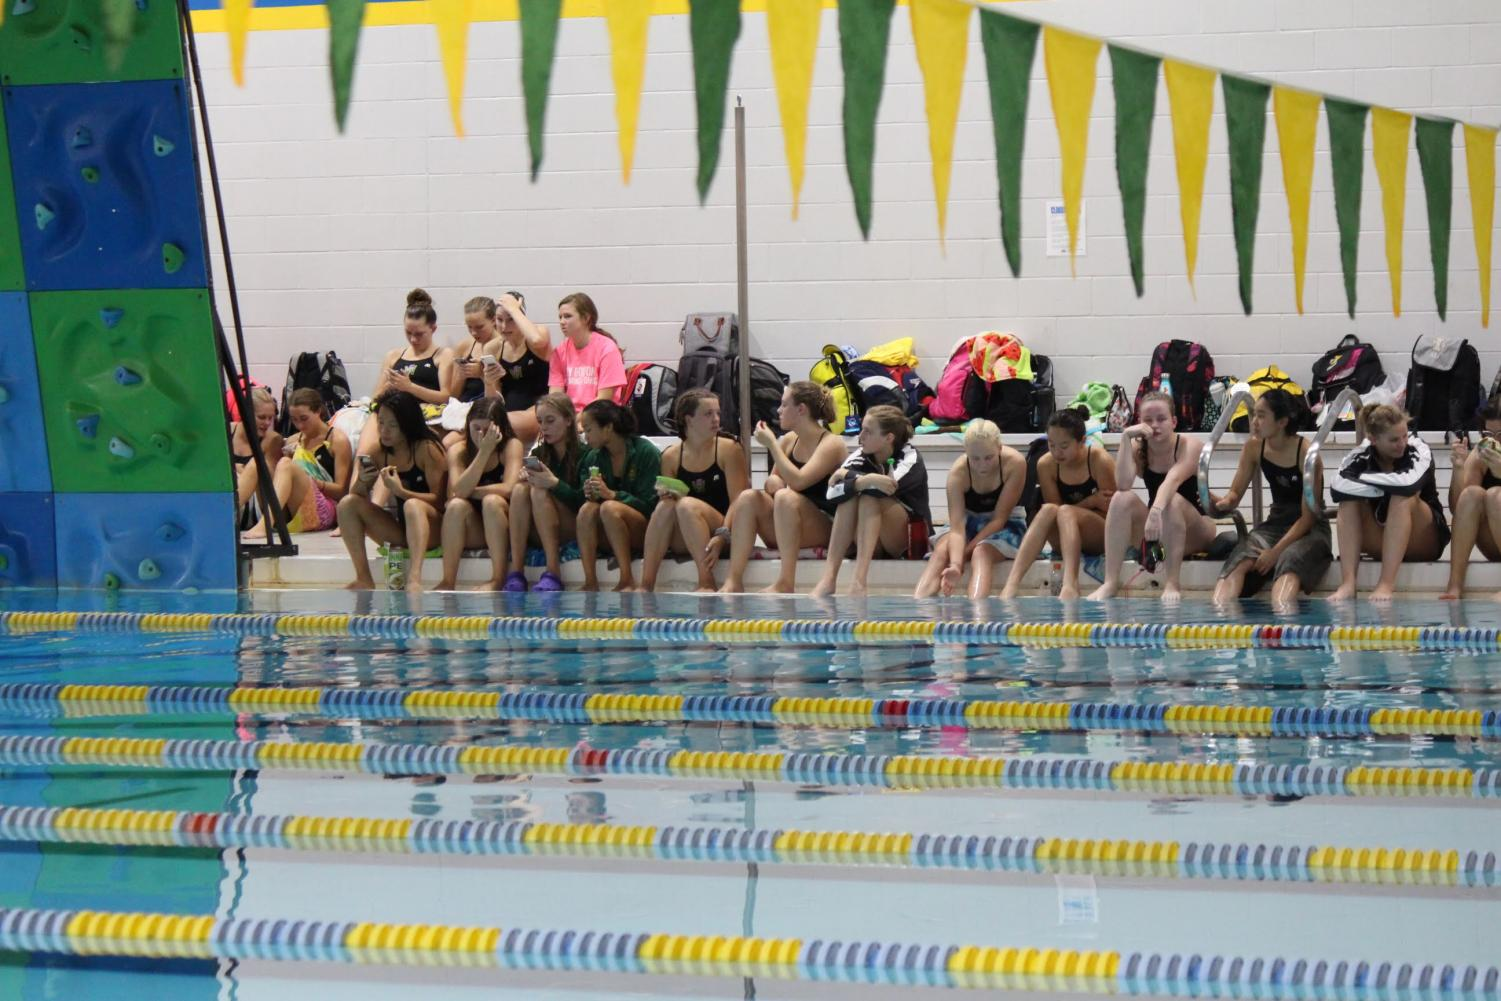 Members of the West High swim team sit as a team to watch the diving portion of the meet on Sept. 17, 2019.